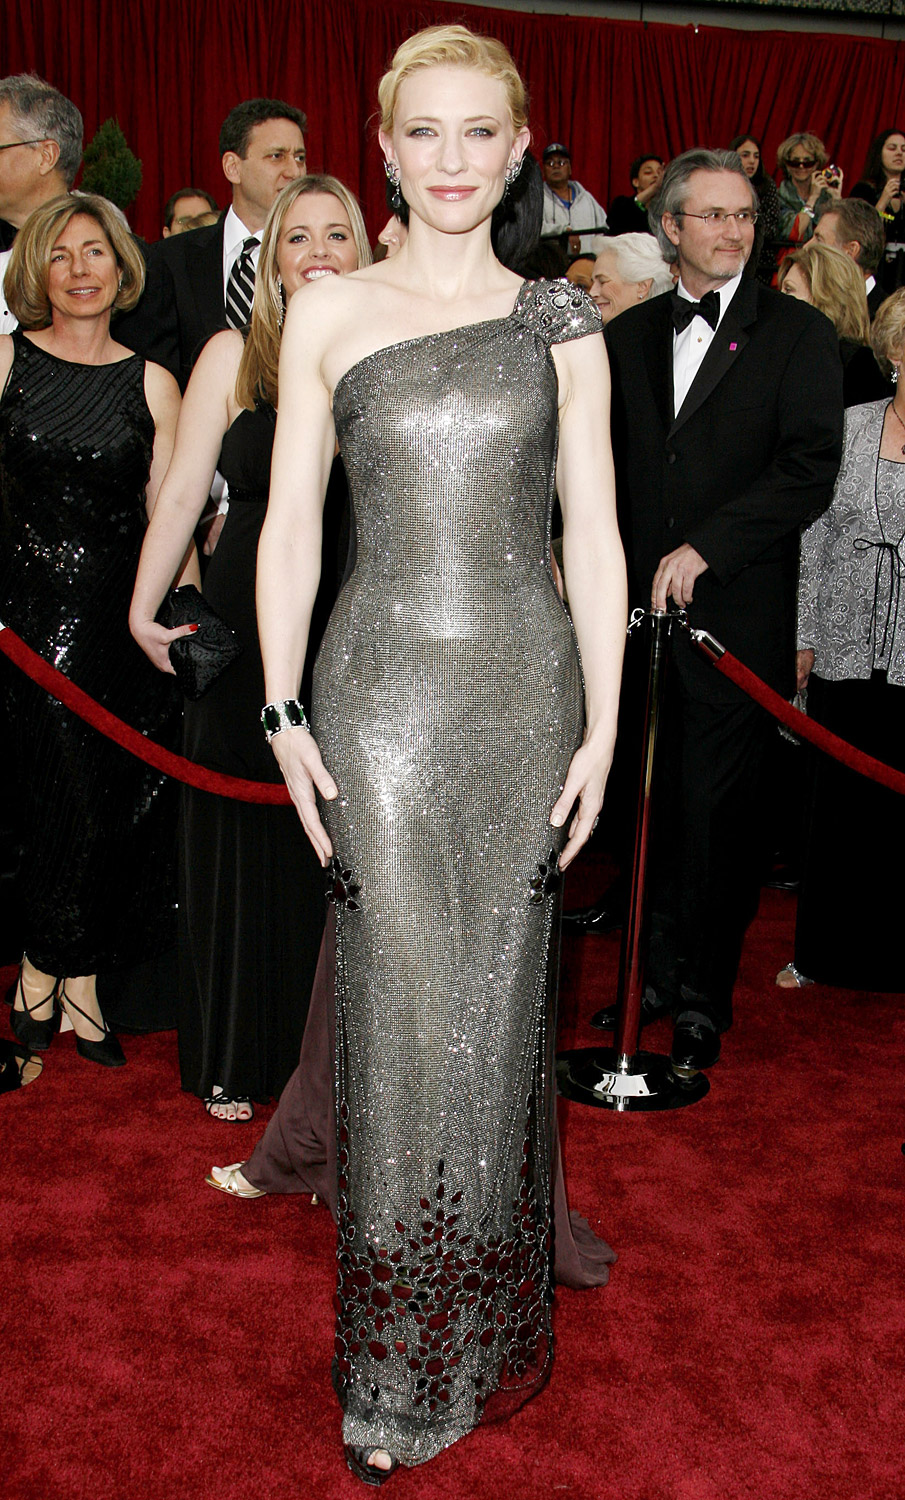 Cate Blanchett's sequins red carpet dress